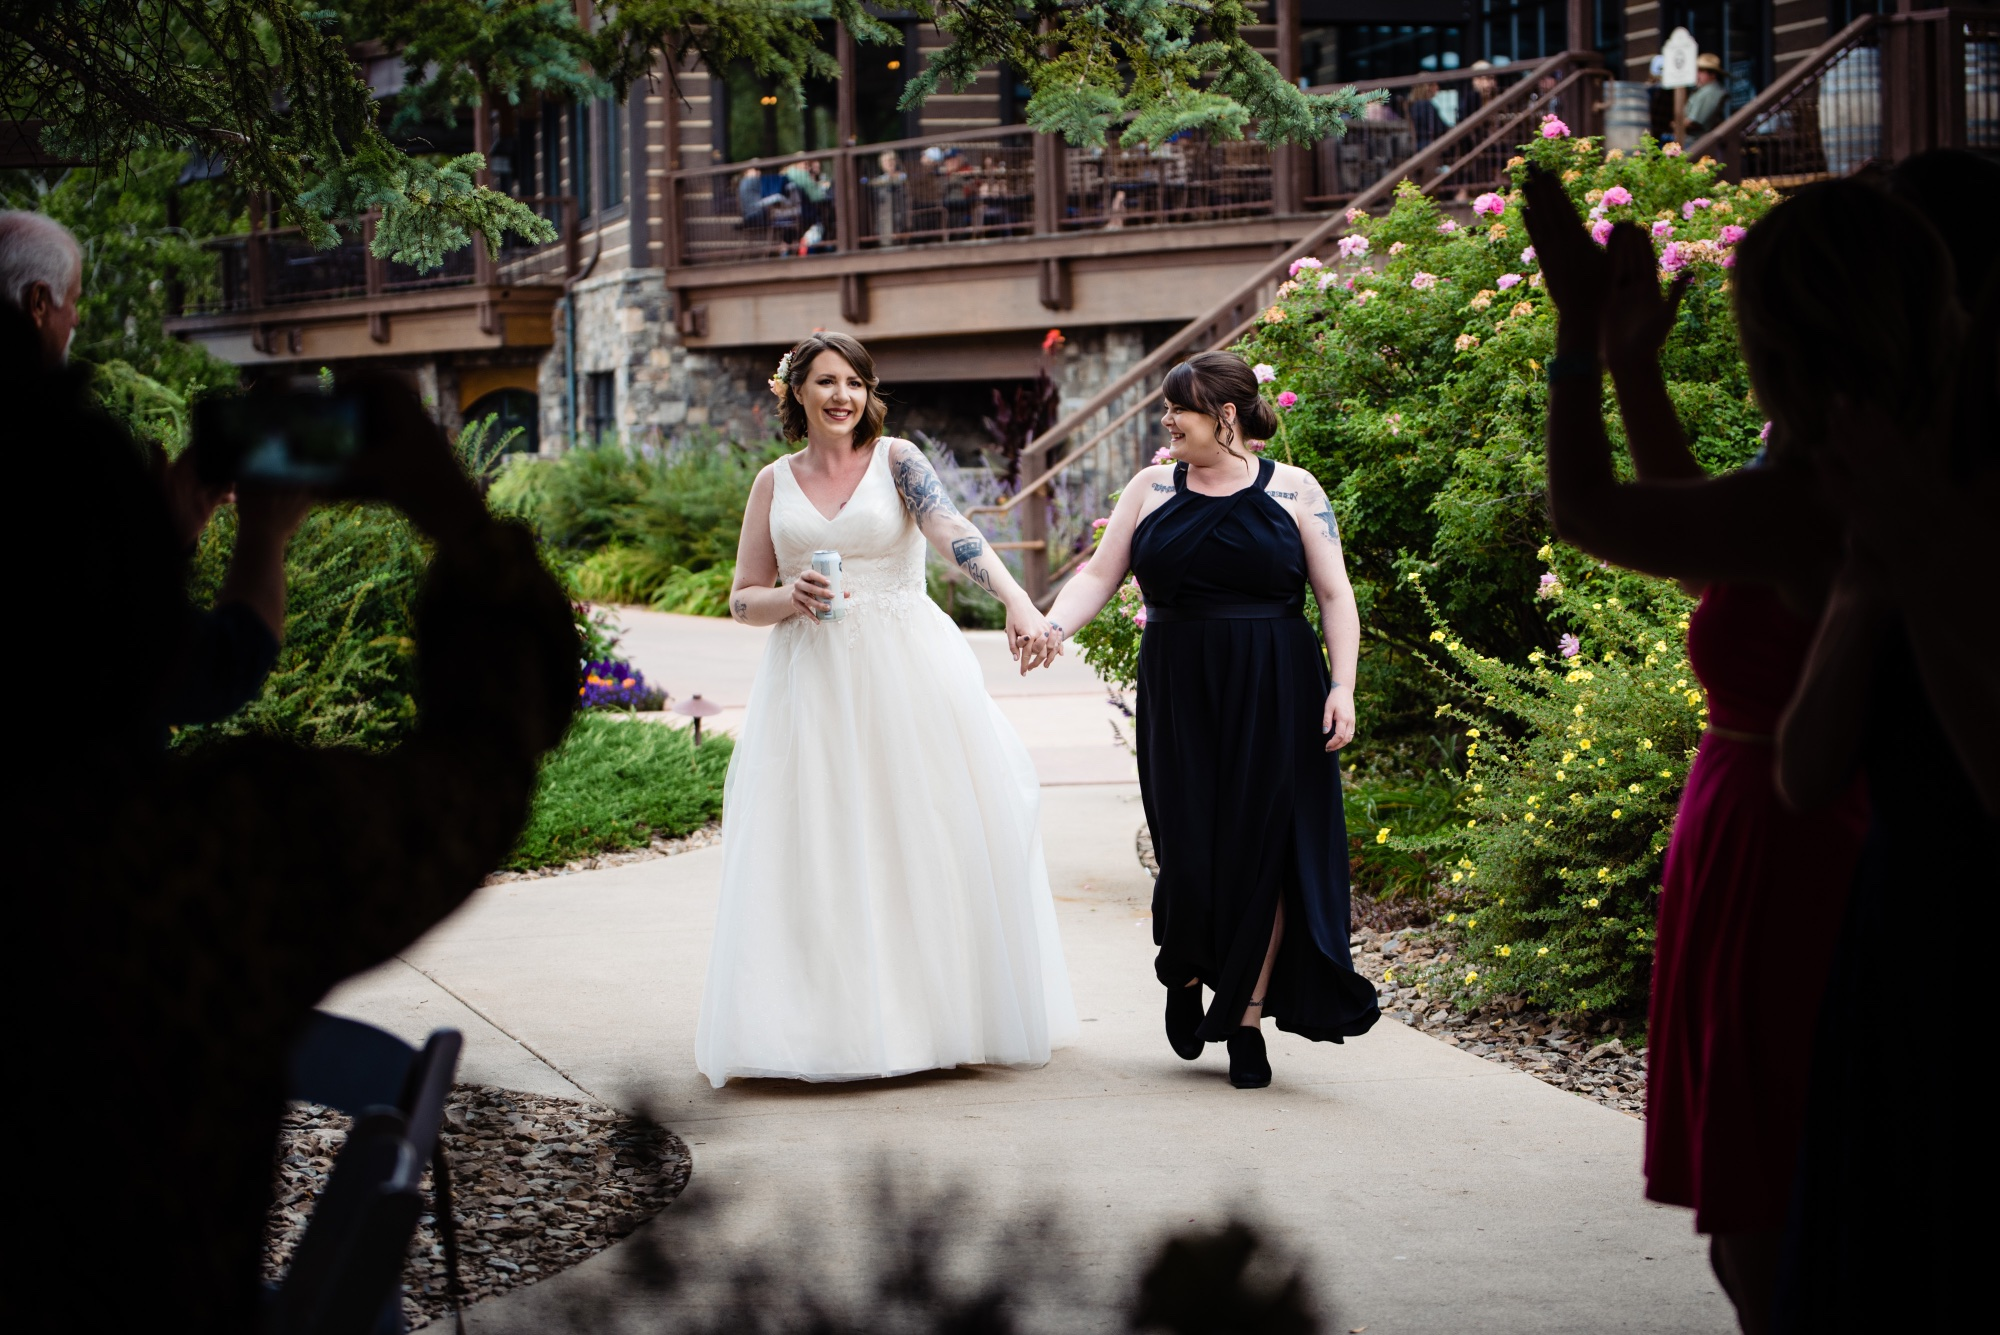 lindseyjanephoto_wedding0078.jpg